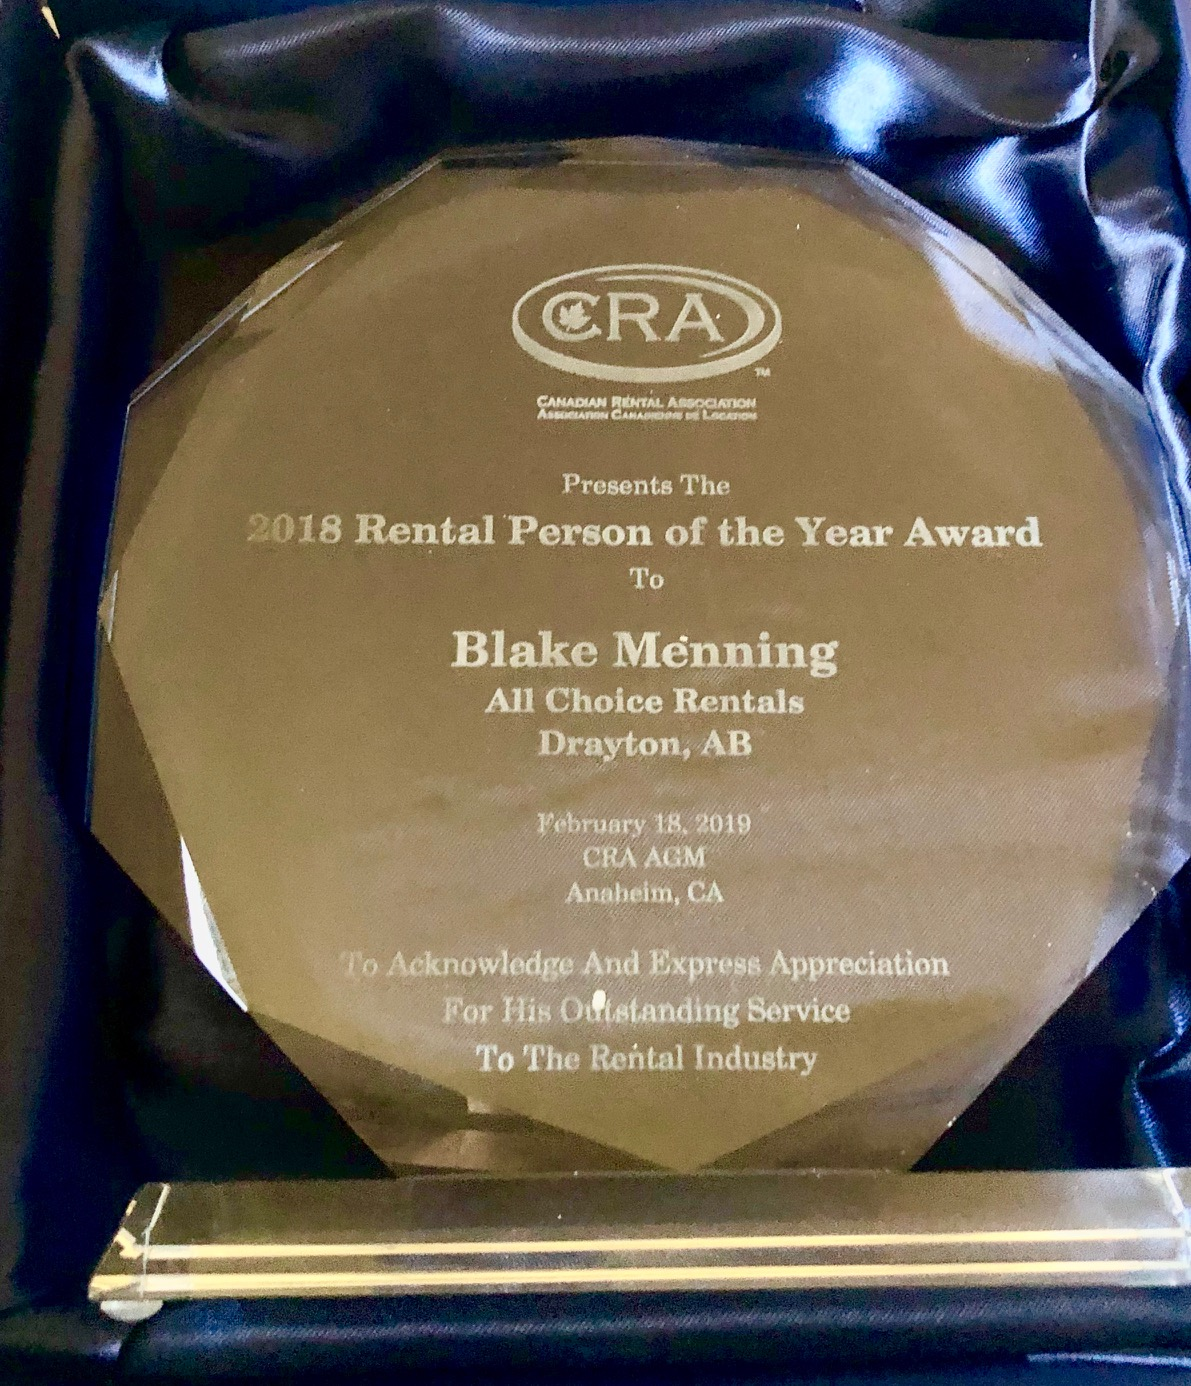 Blake Menning Wins 2018 Canadian Rental Person Of The Year Award